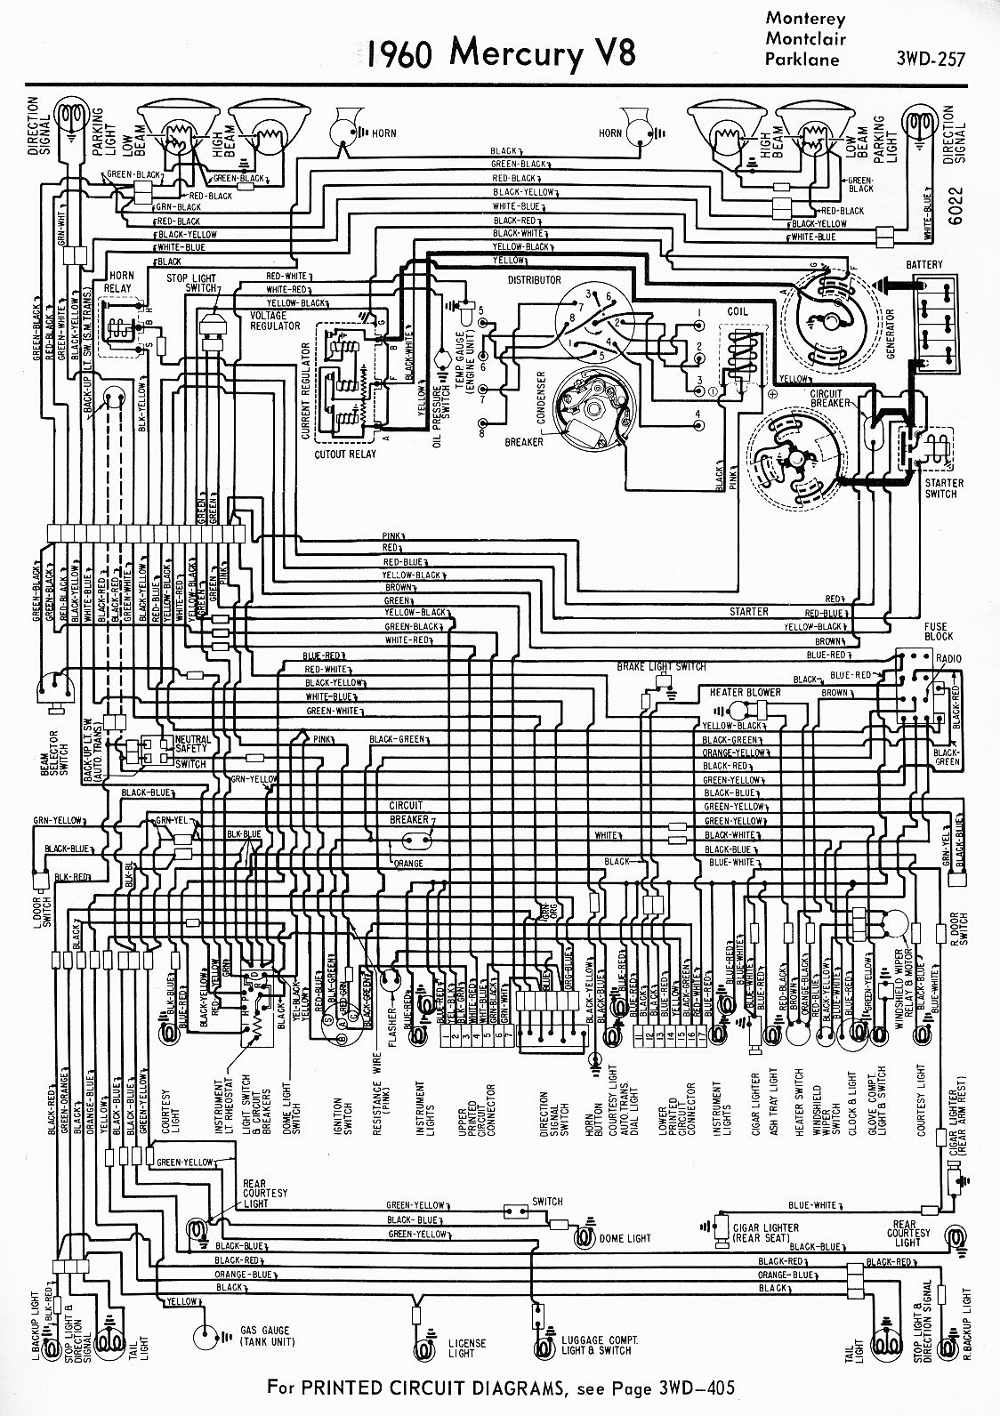 2005 mercury wiring diagram wiring diagram online 2005 Ford Five Hundred Wiring Diagram